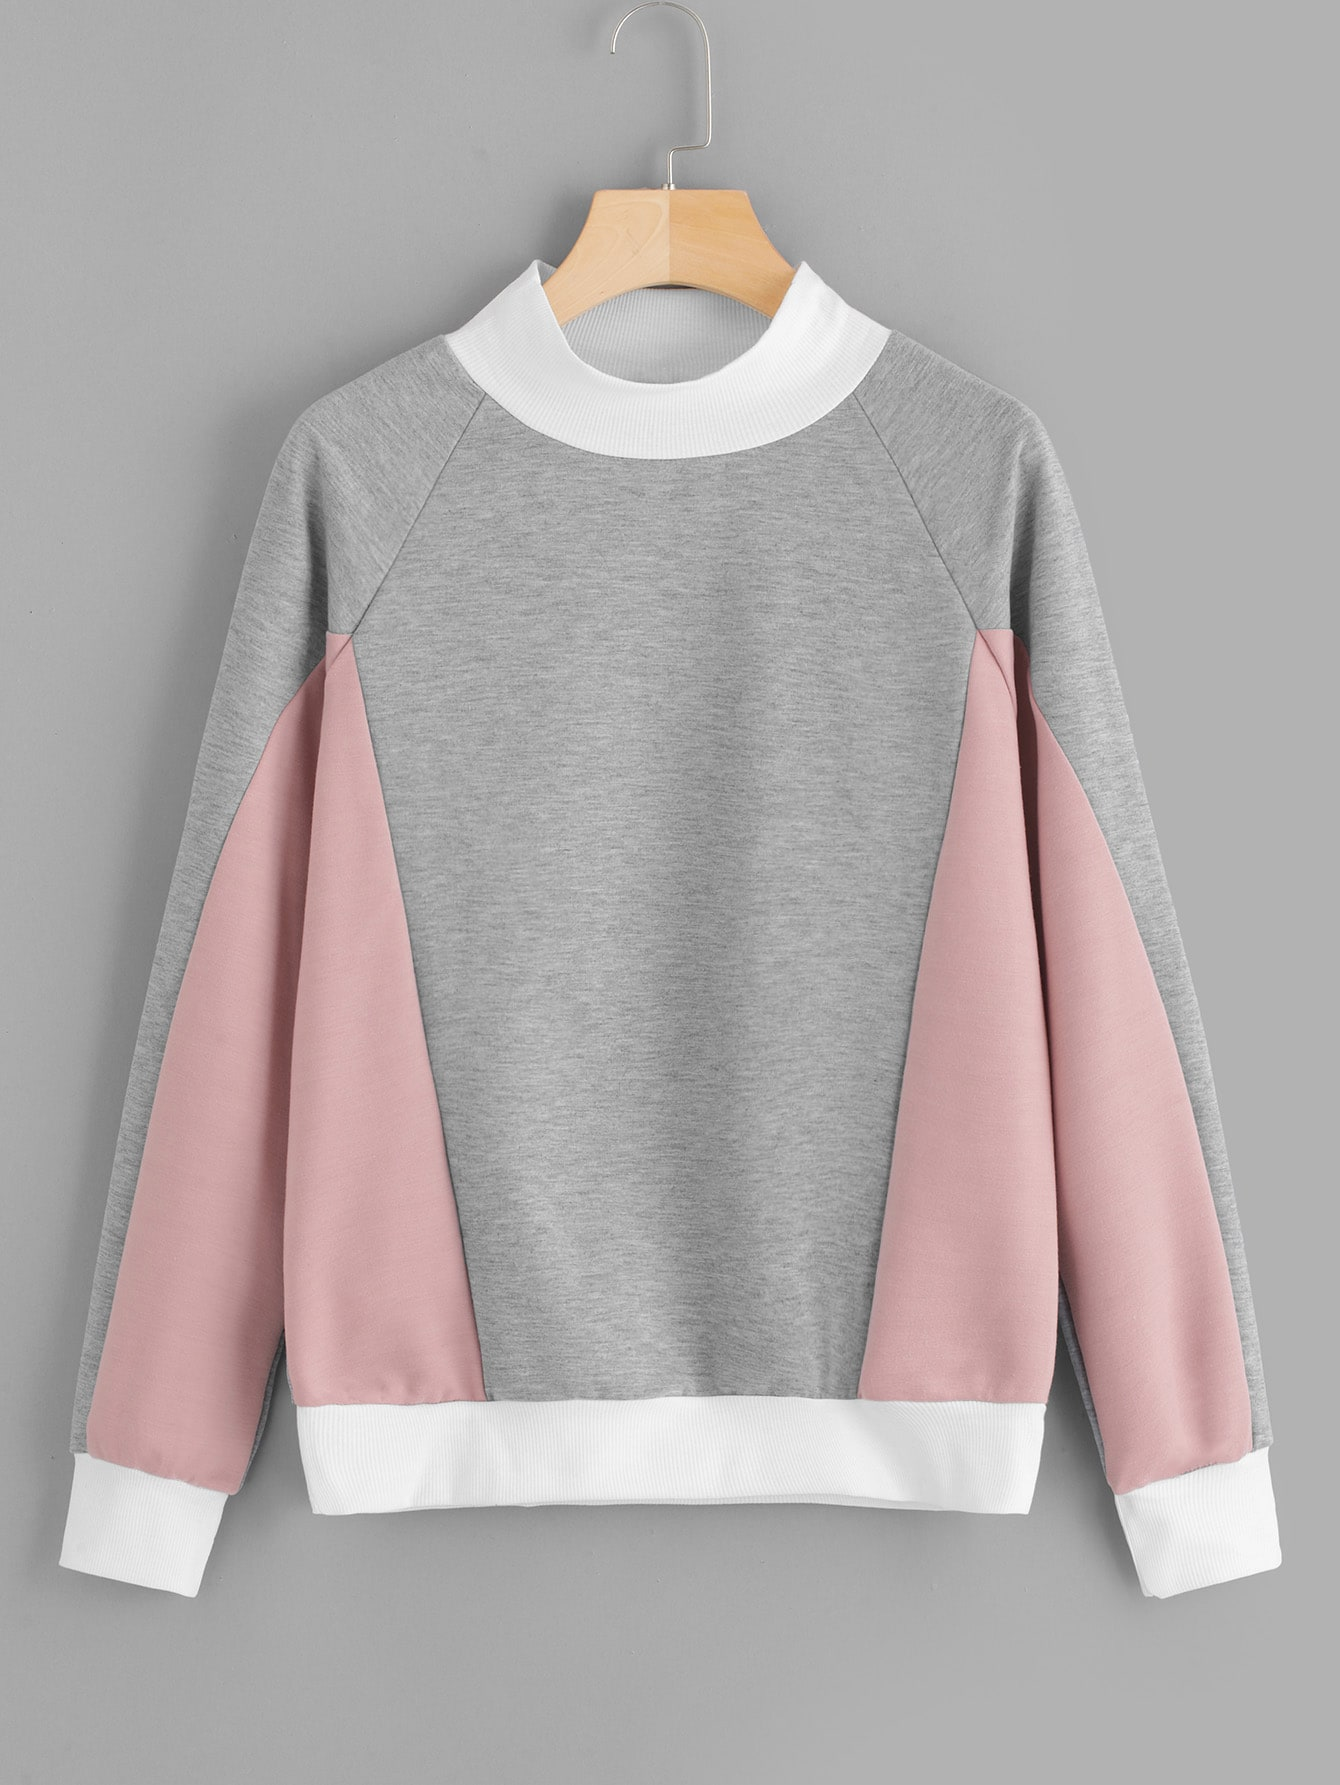 Raglan Sleeve Contrast Panel Sweatshirt Raglan Sleeve Contrast Panel Sweatshirt